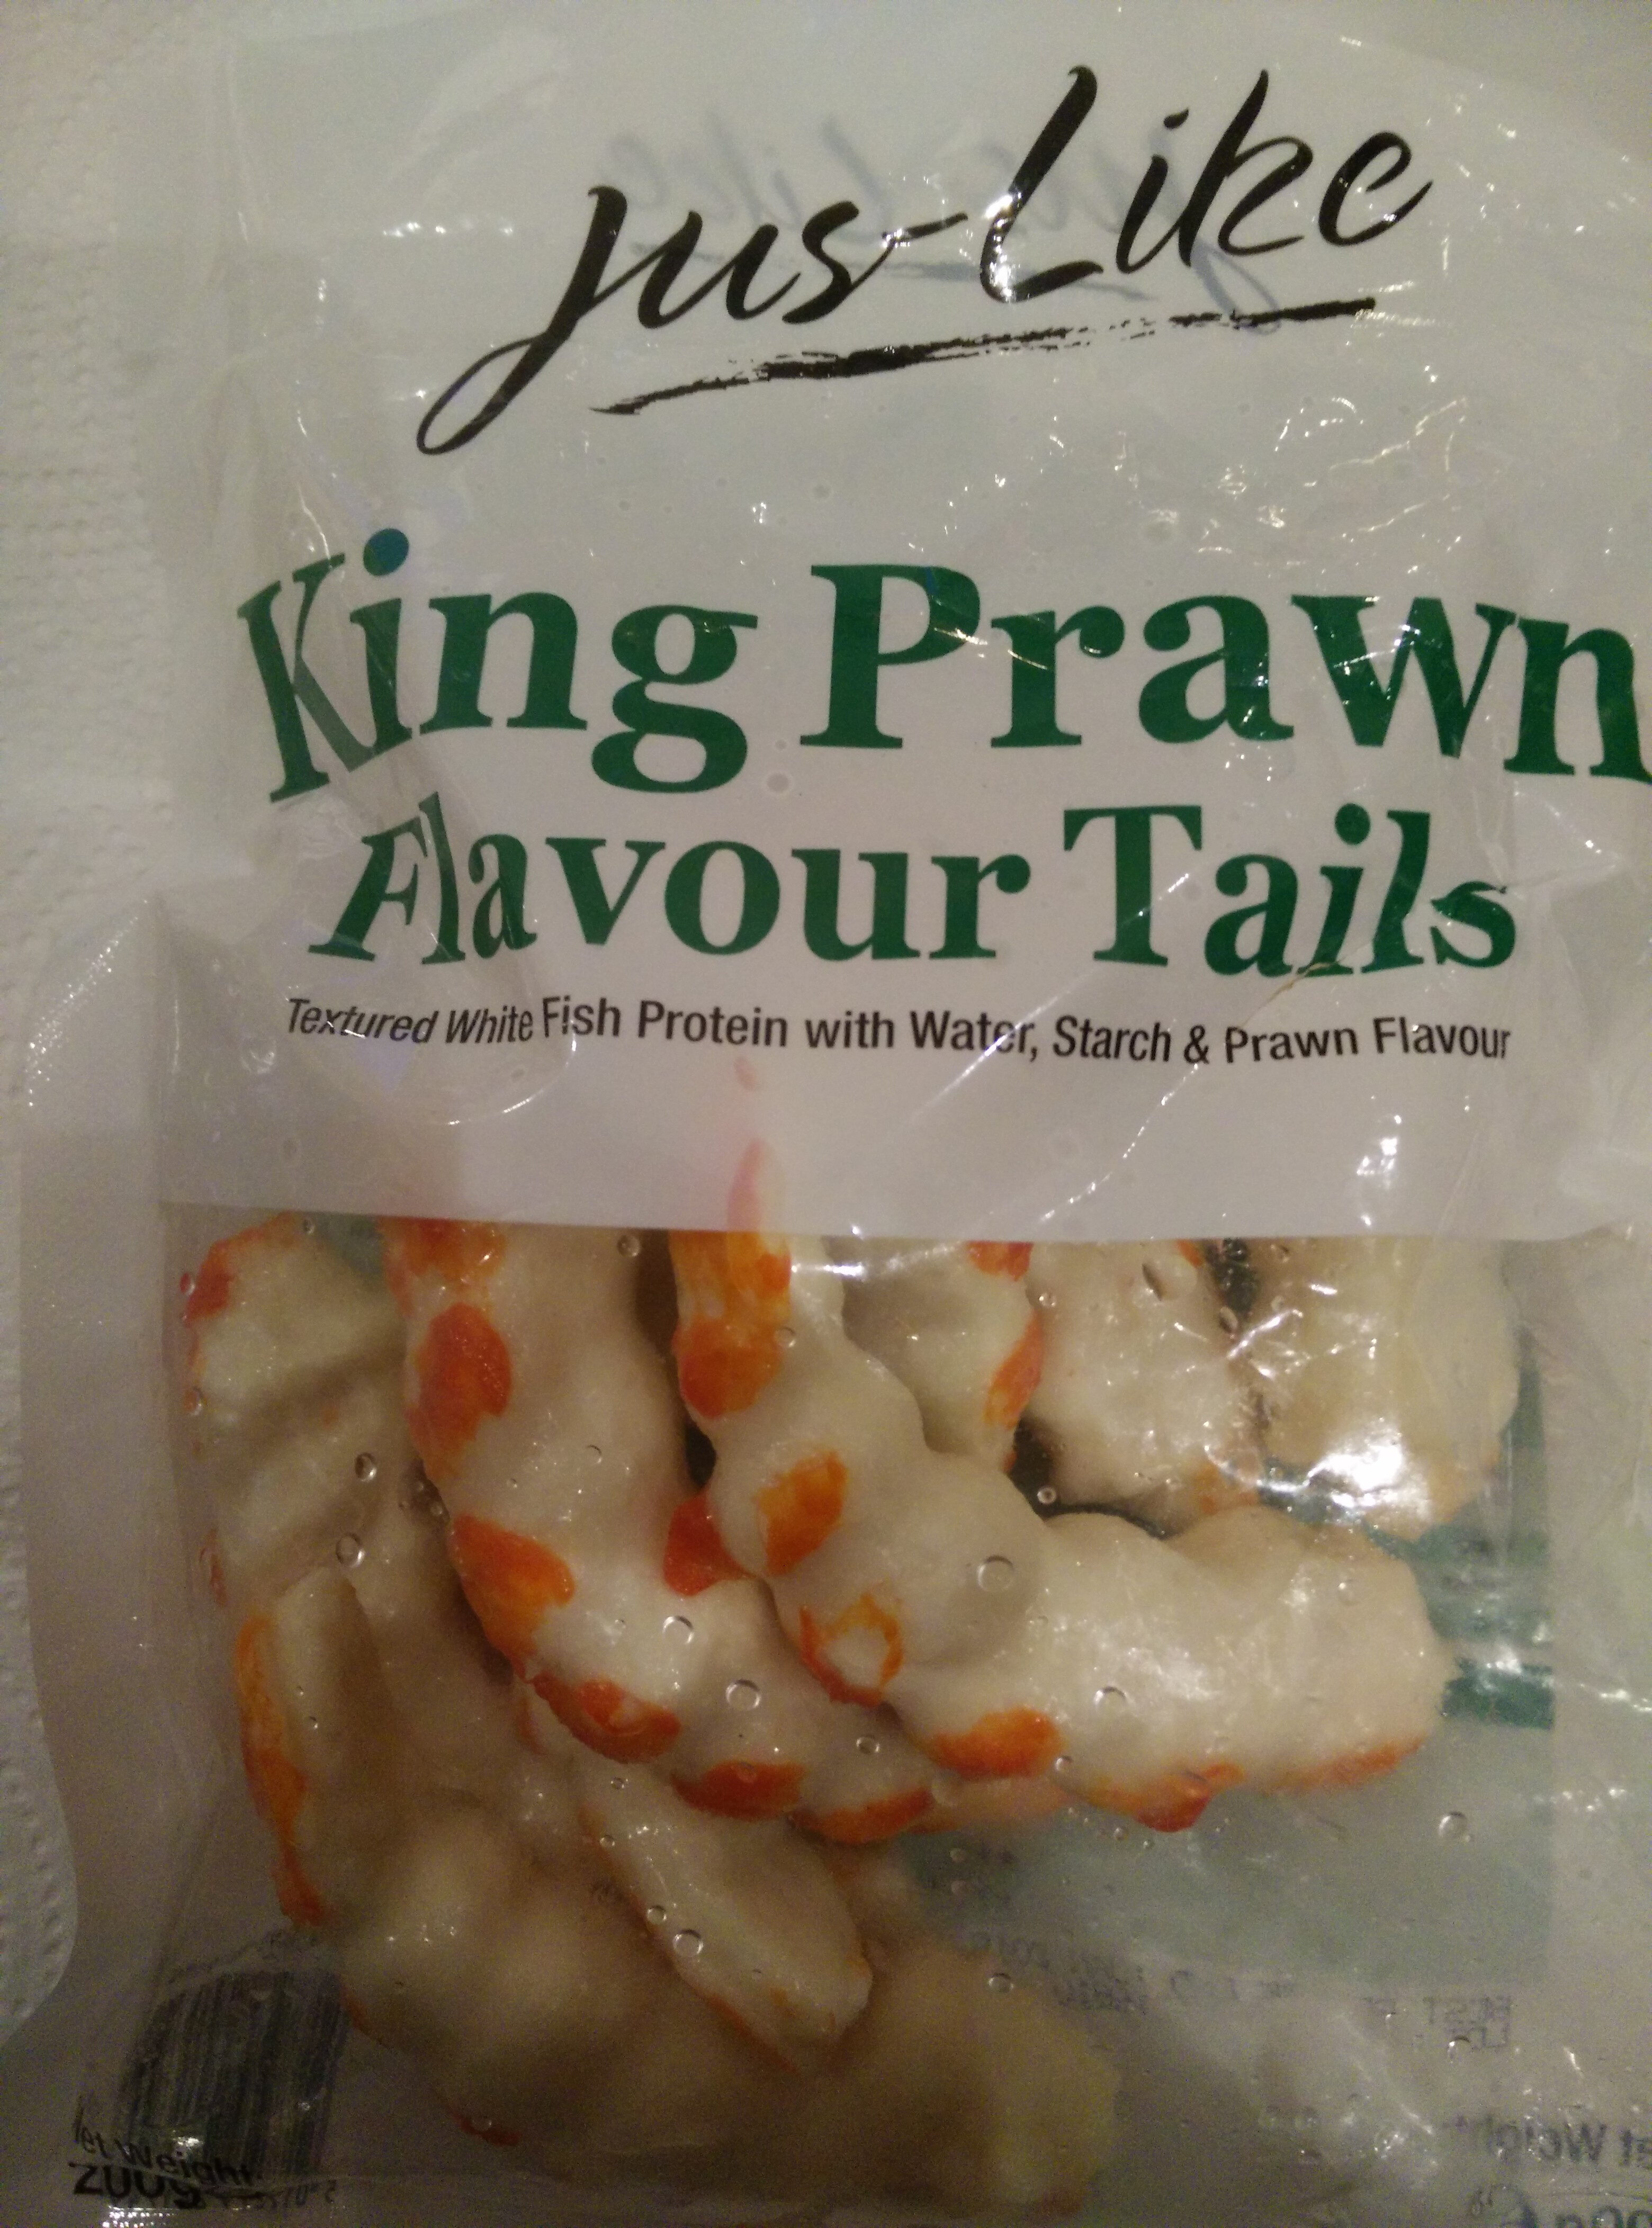 King prawn flavour tails - Product